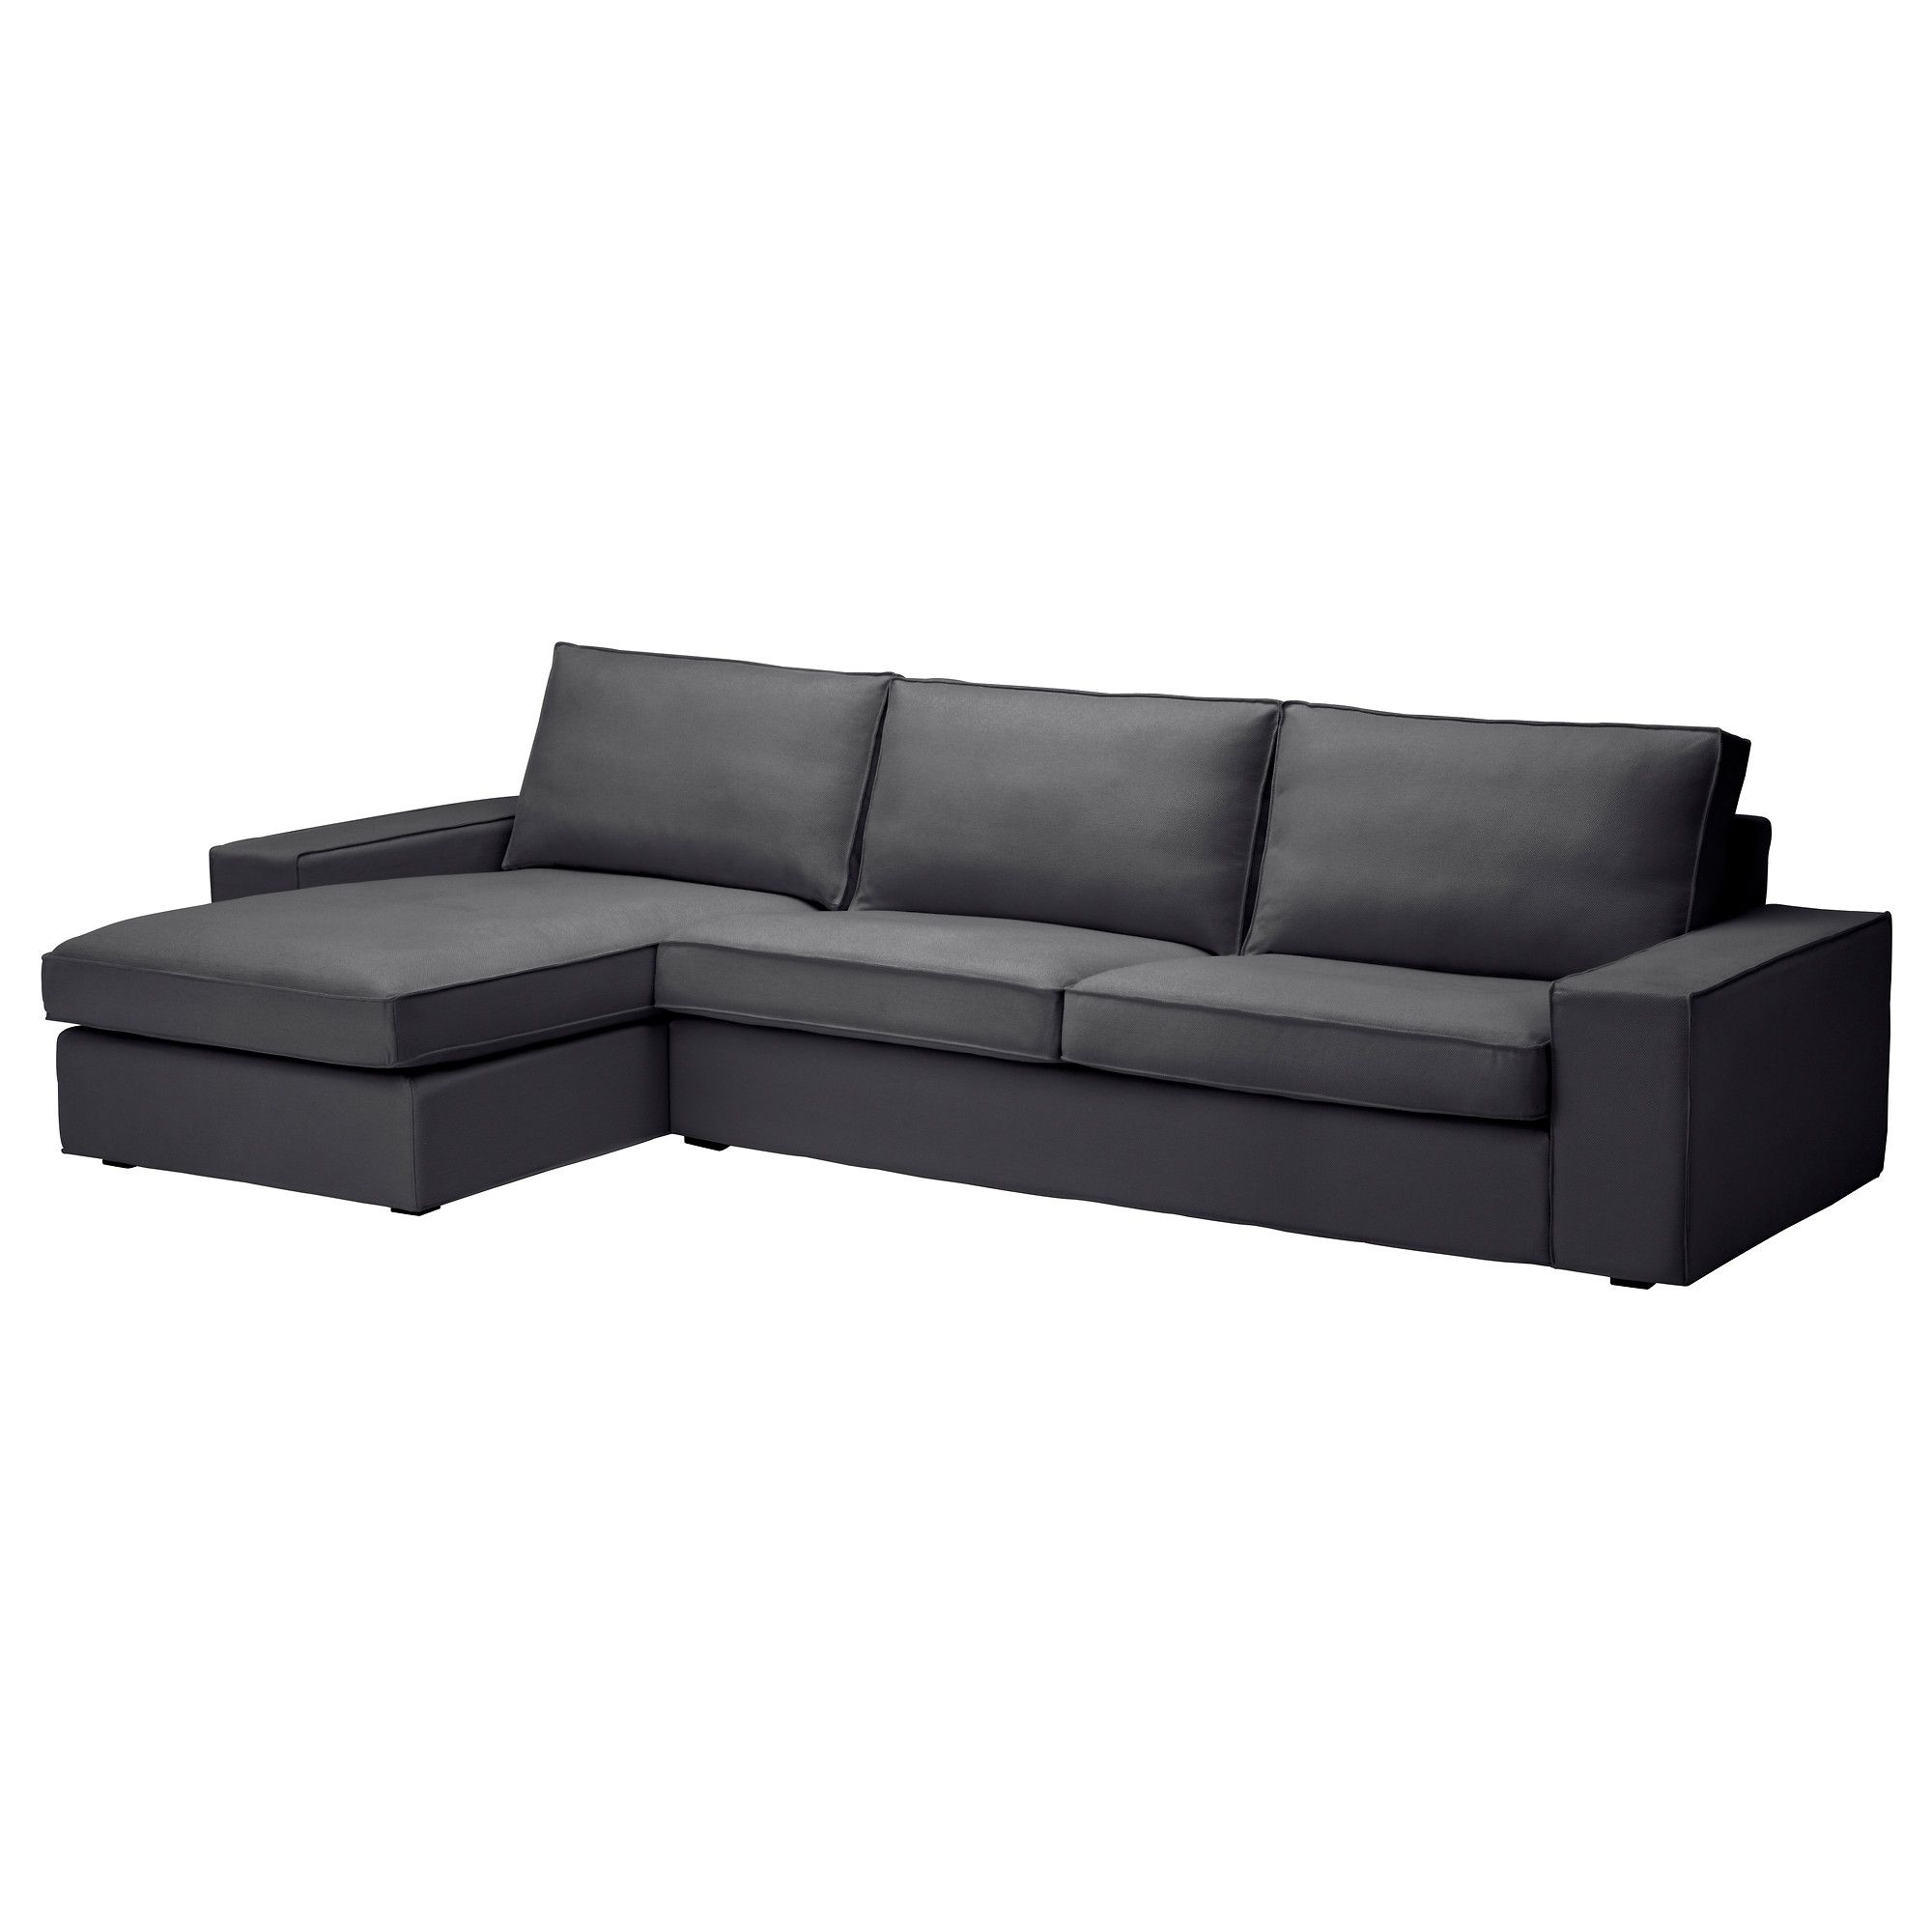 KIVIK Sofa and chaise lounge Dansbo dark gray Sofa Chaise $938